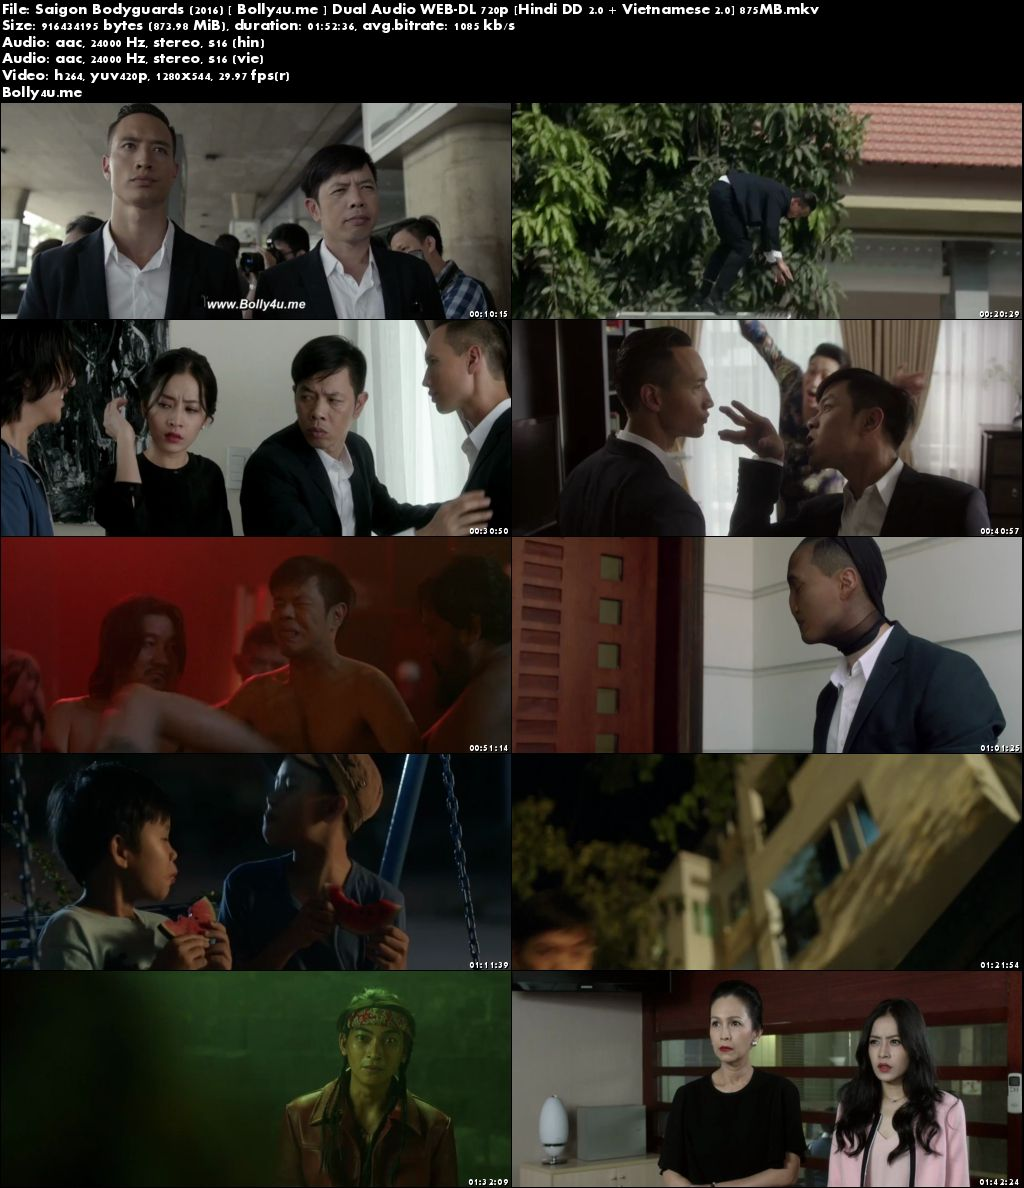 Saigon Bodyguards 2016 WEB-DL 350MB Hindi Dual Audio 480p Download